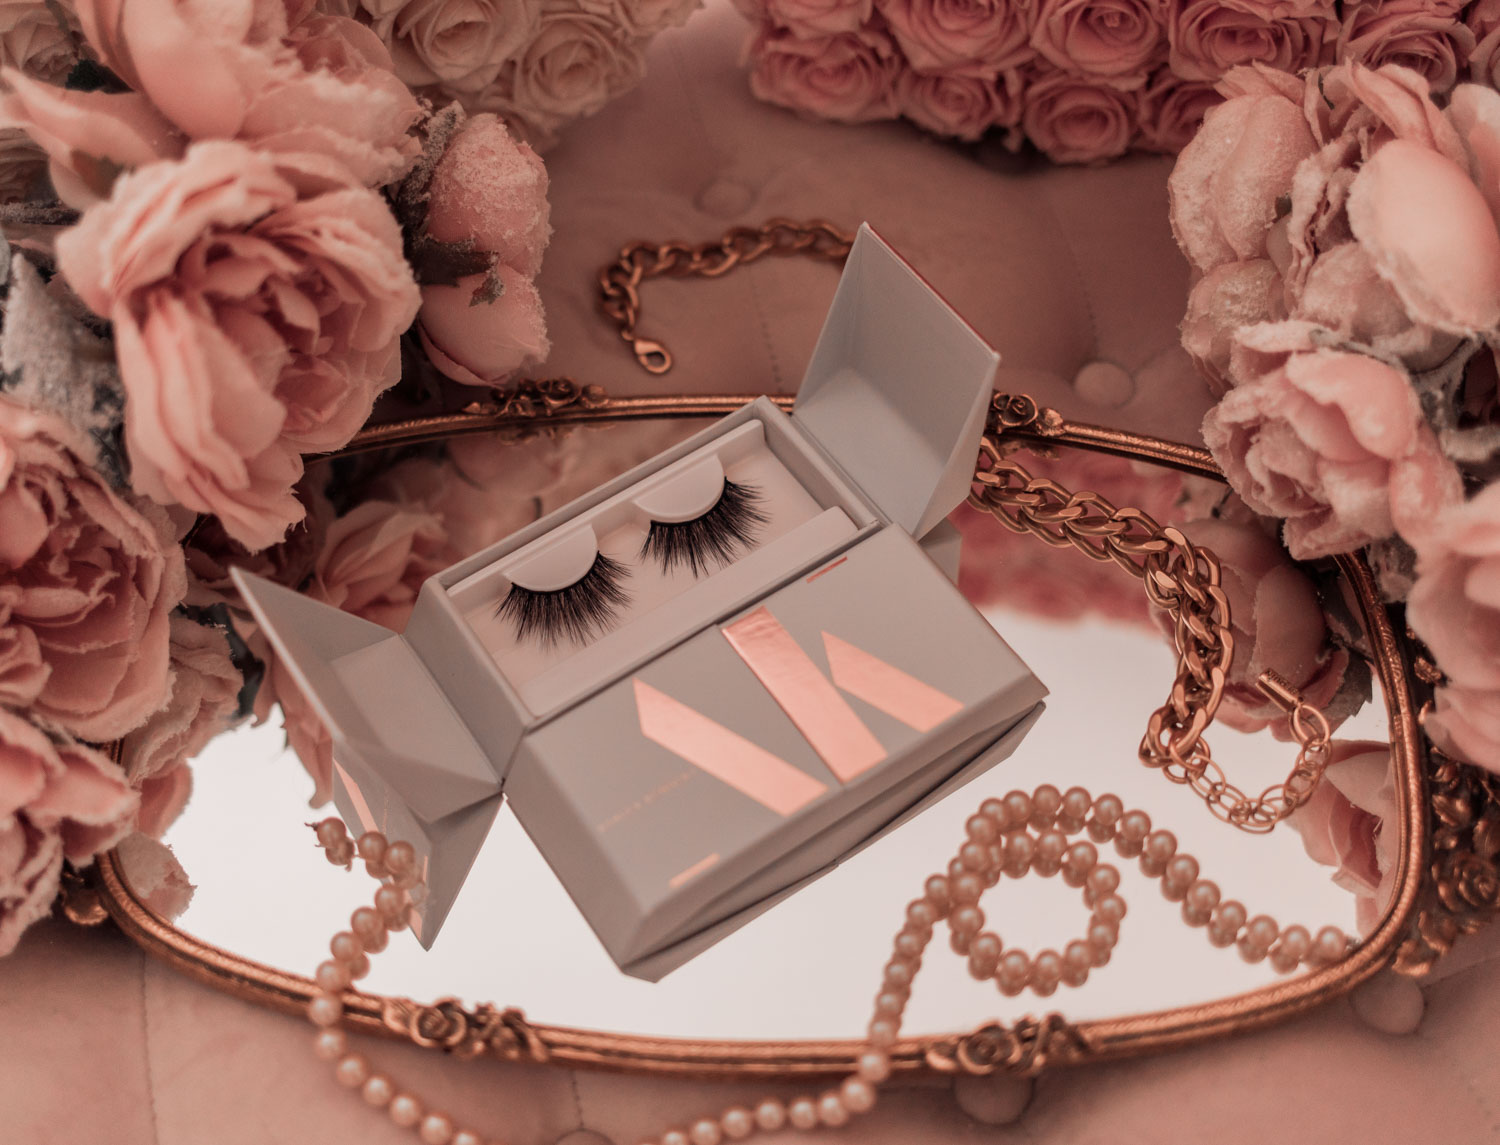 Feminine fashion and beauty blogger Elizabeth Hugen of Lizzie in Lace shares her honest Ashley Kennedy lashes review and comparison of all the false eyelashes and the adhesive pens